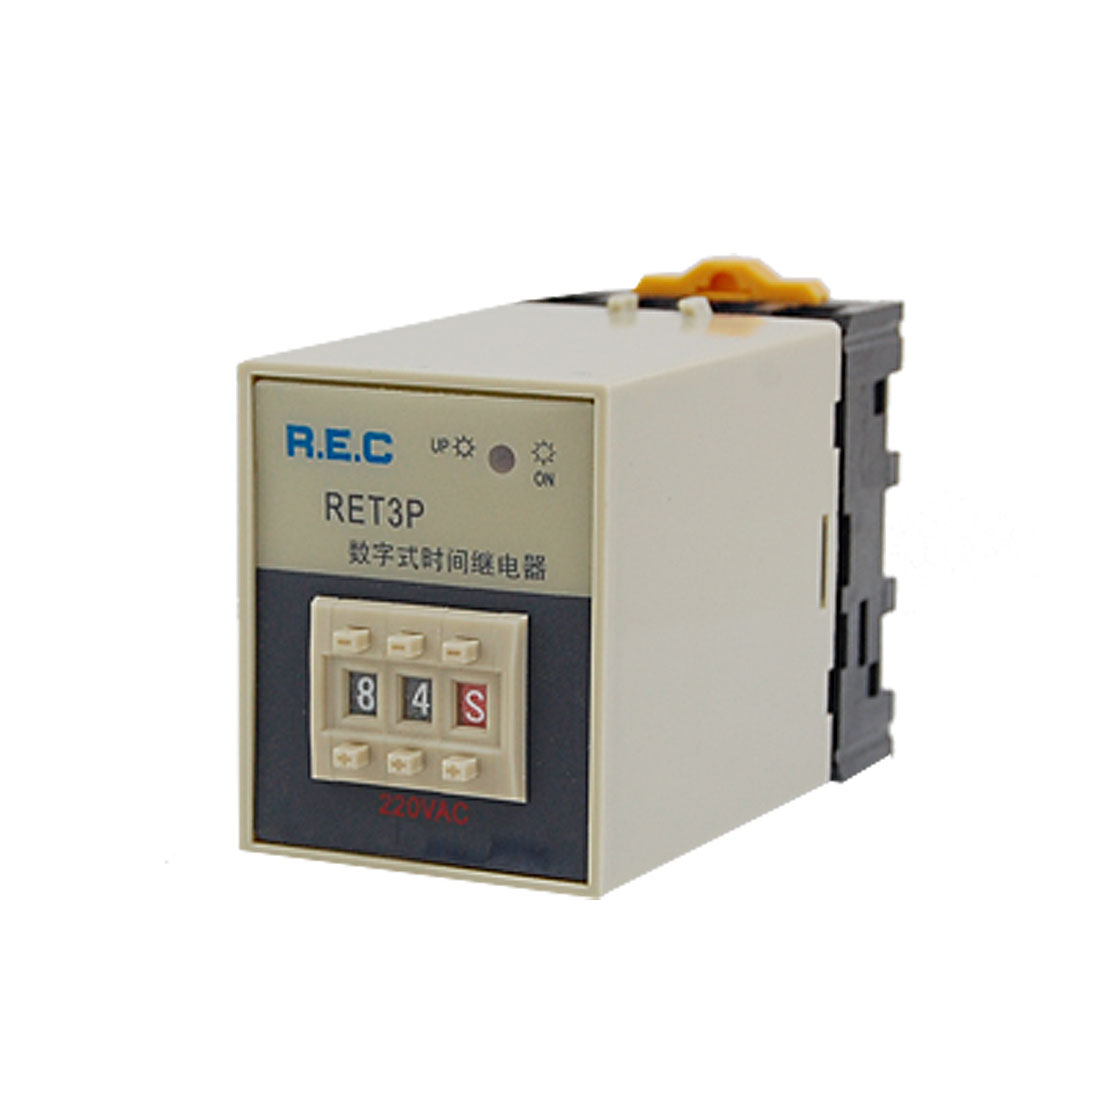 0.1s-99h 2 Digits Preset Electrical Time Relay RET3P w Socket